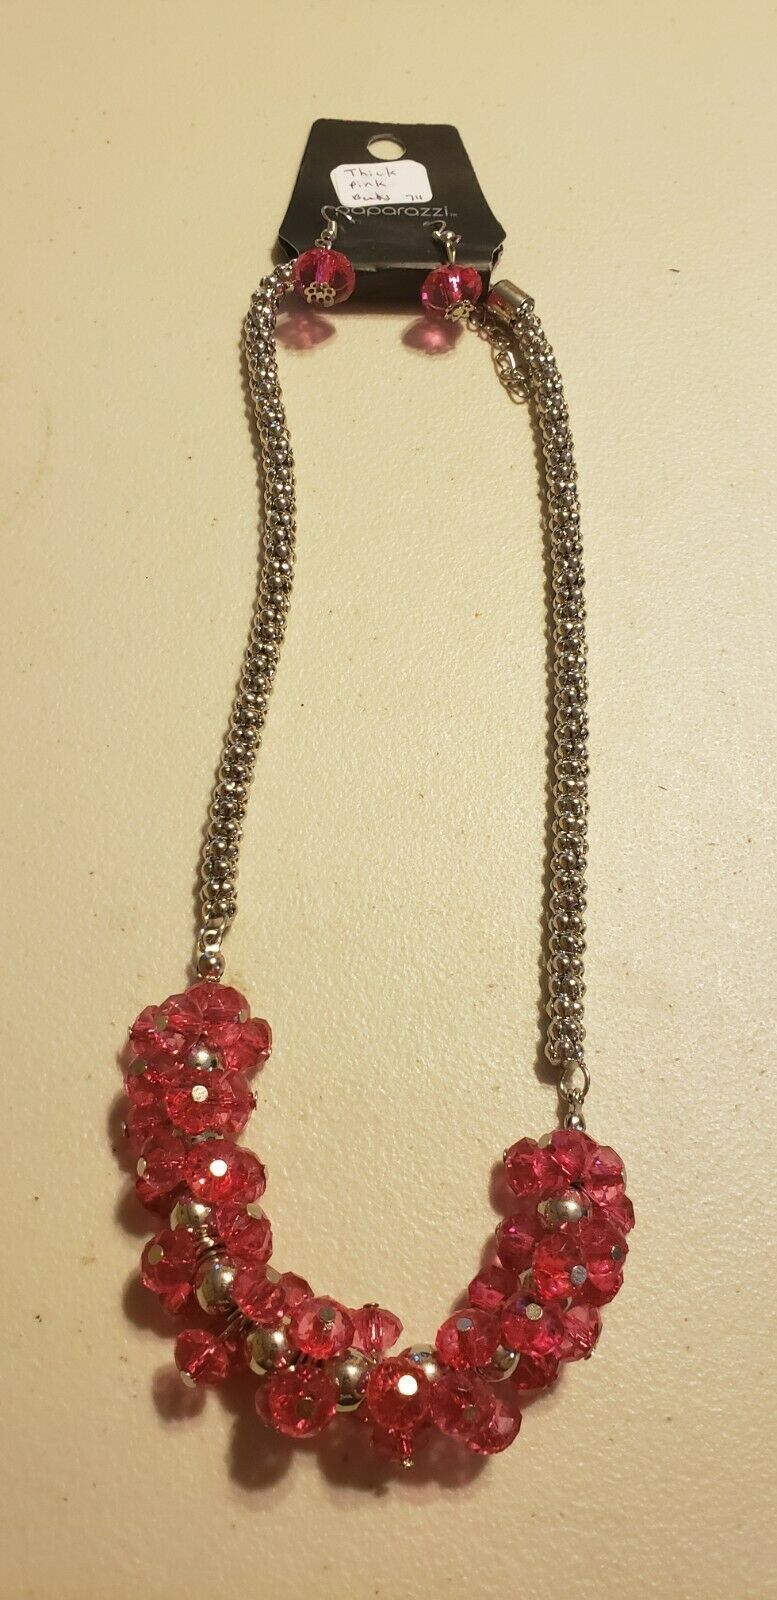 Primary image for Paparazzi Short Necklace & Earring set (new) #711 THICK PINK BEADS